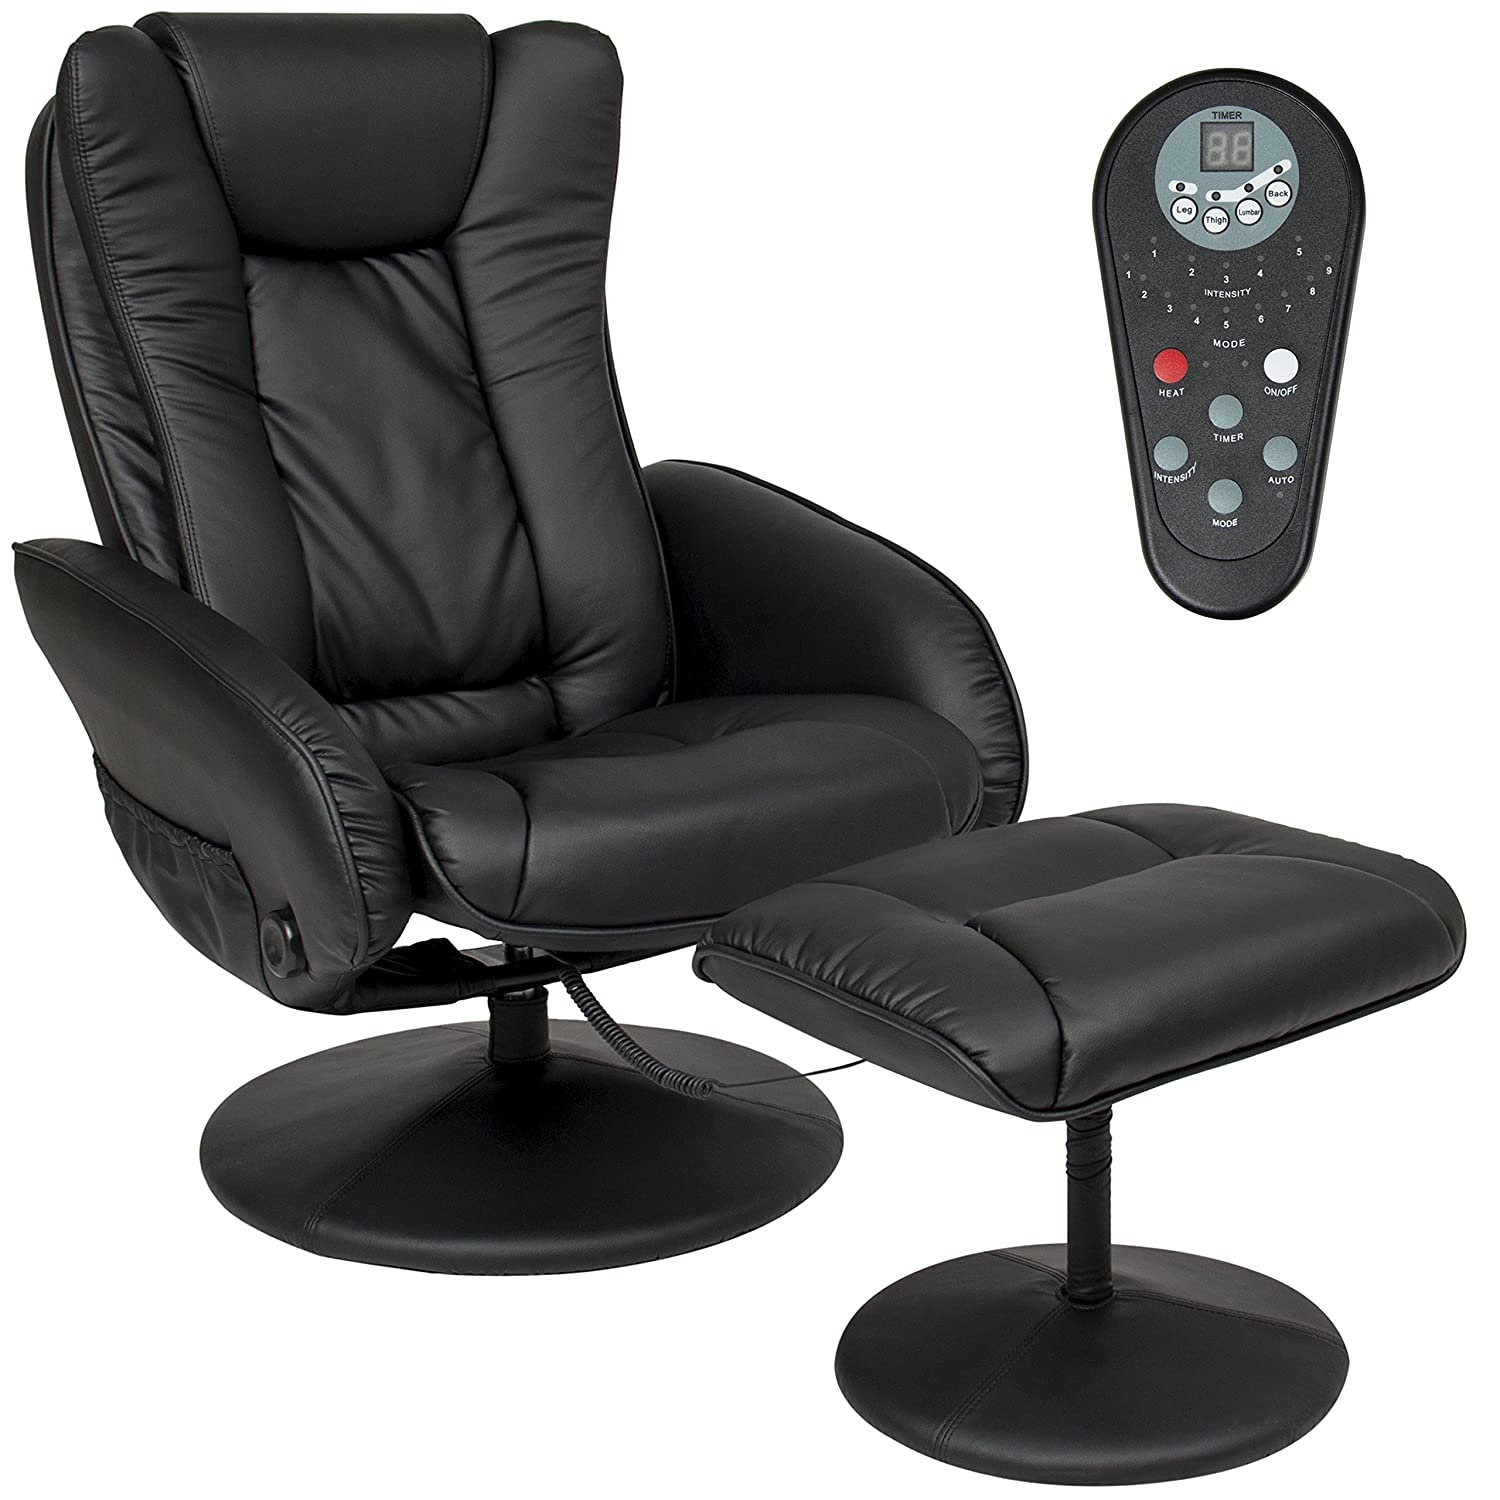 clear massage zero fantastic dietasdeadelgazar gravity chair awesome recliner amazon of